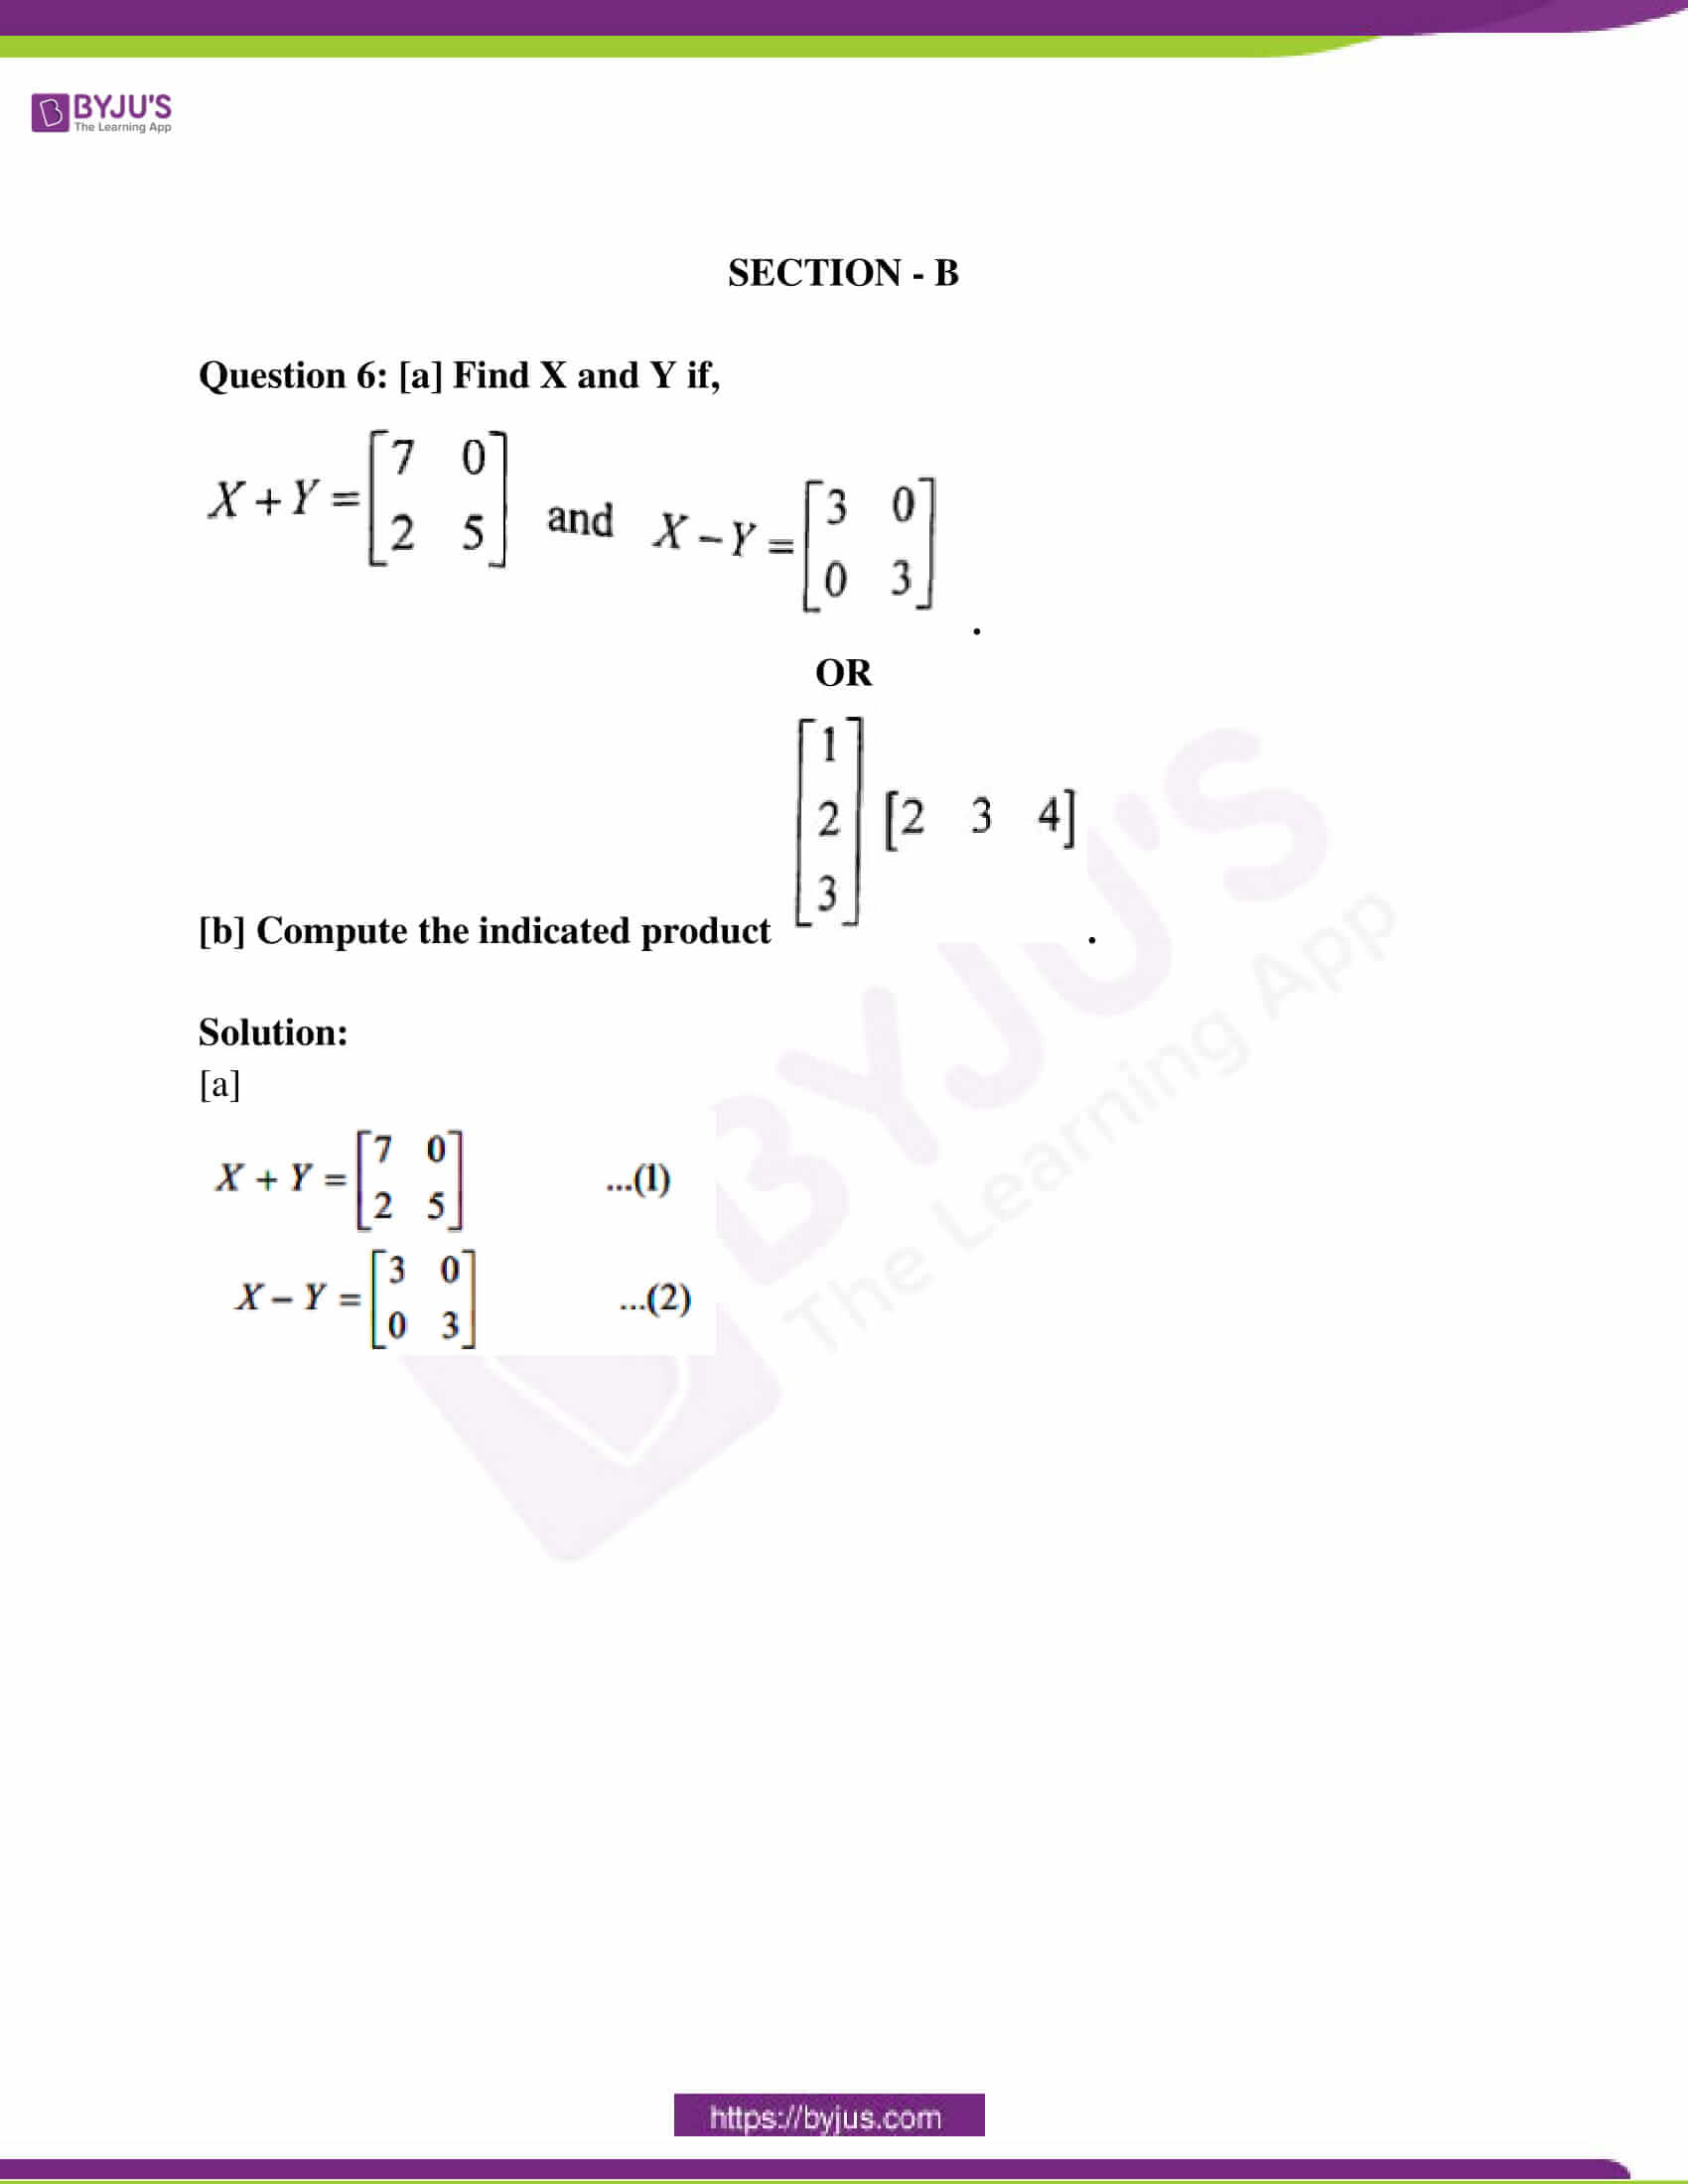 mp board class 12 questions and answers maths 2020 07